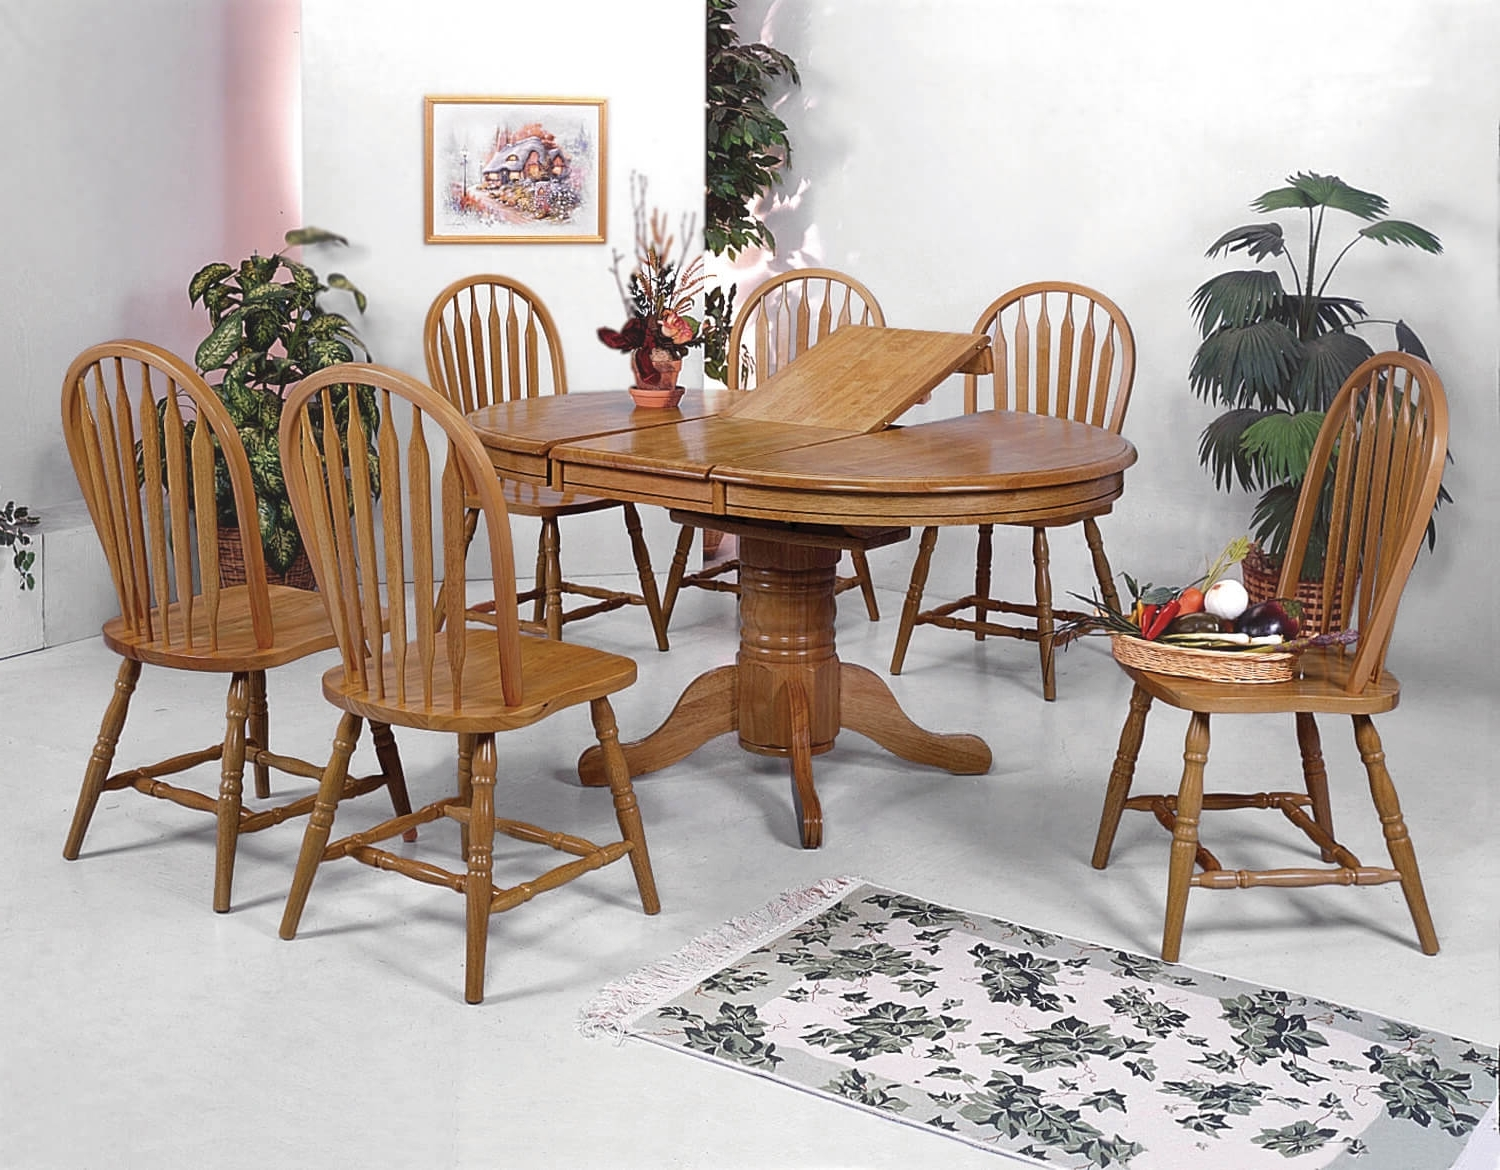 Oak Furniture Dining Sets Pertaining To Best And Newest Crown Mark Dark Oak Dining Room Set (View 16 of 25)